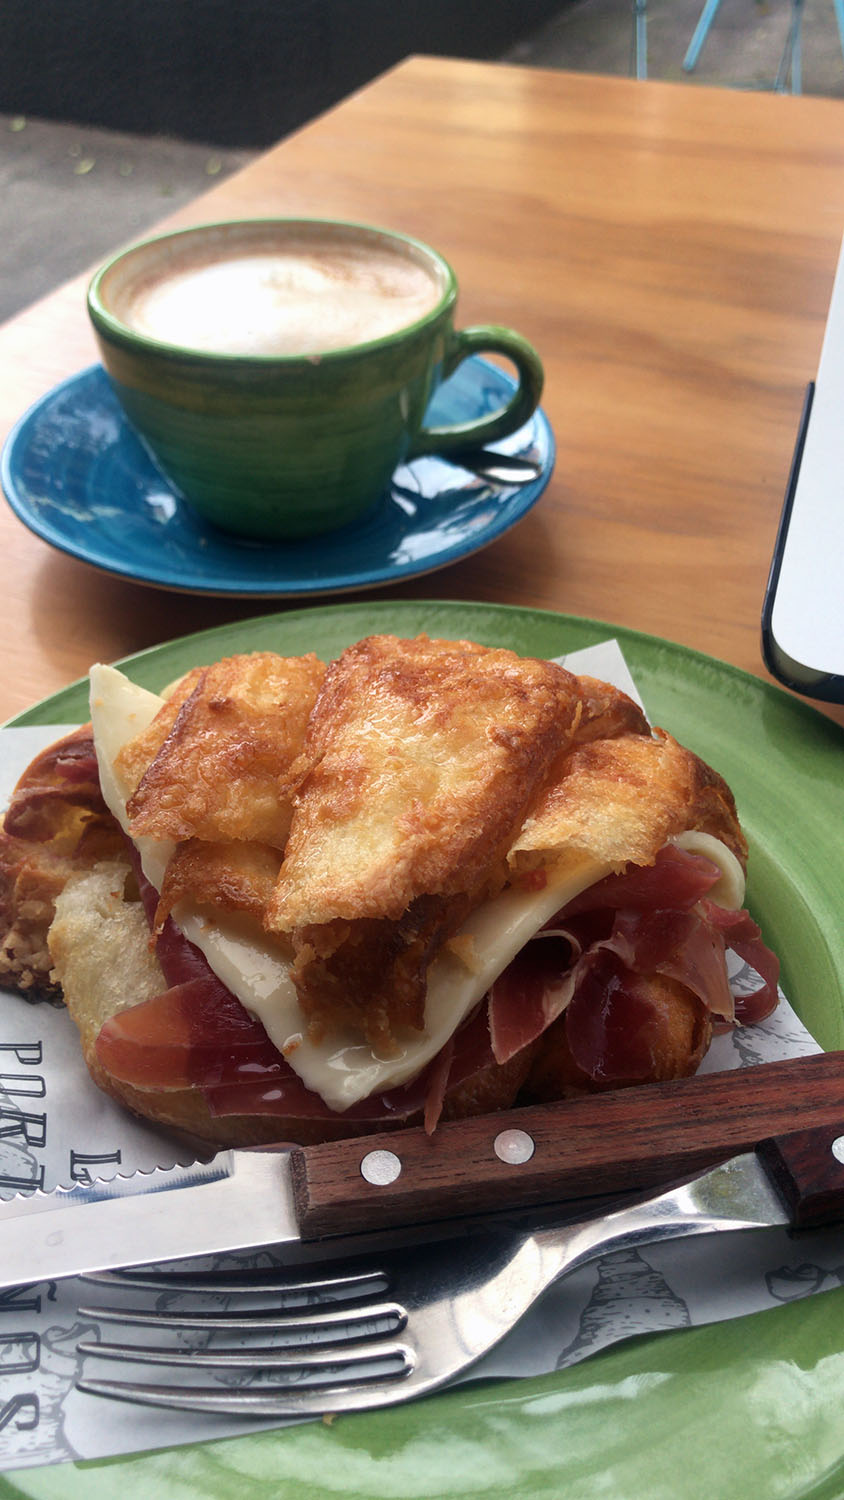 Amazing croissant with Serrano ham and gouda cheese